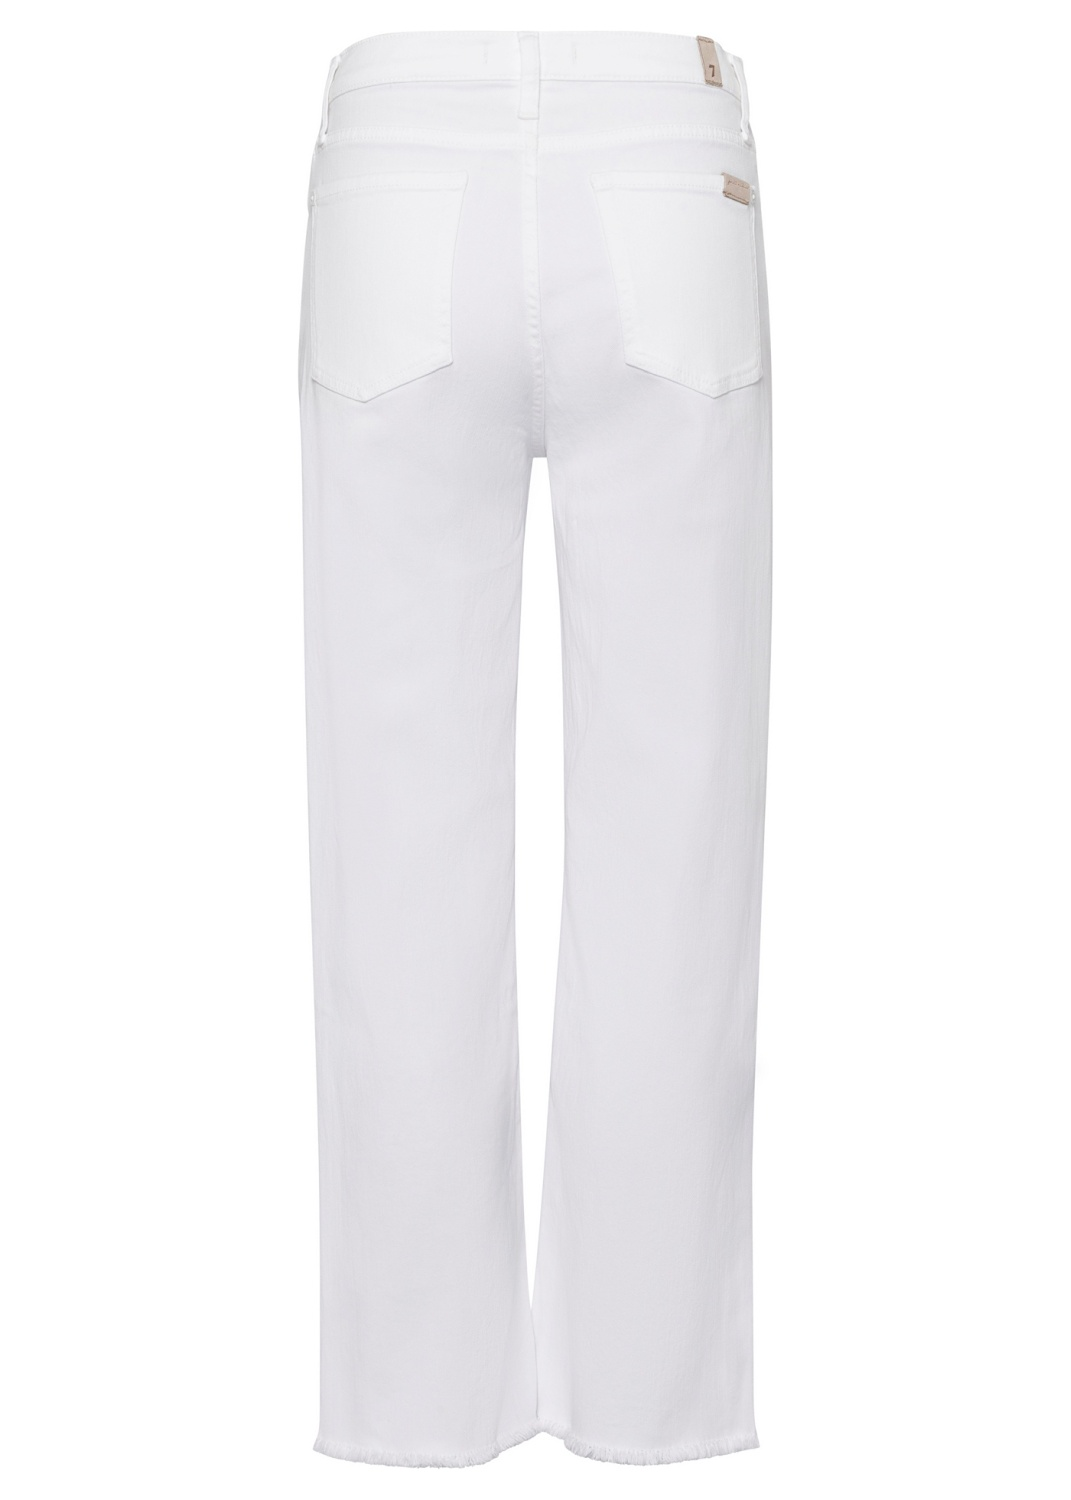 CROPPED ALEXA Left Hand Pure White with Raw Cut Frayed image number 1